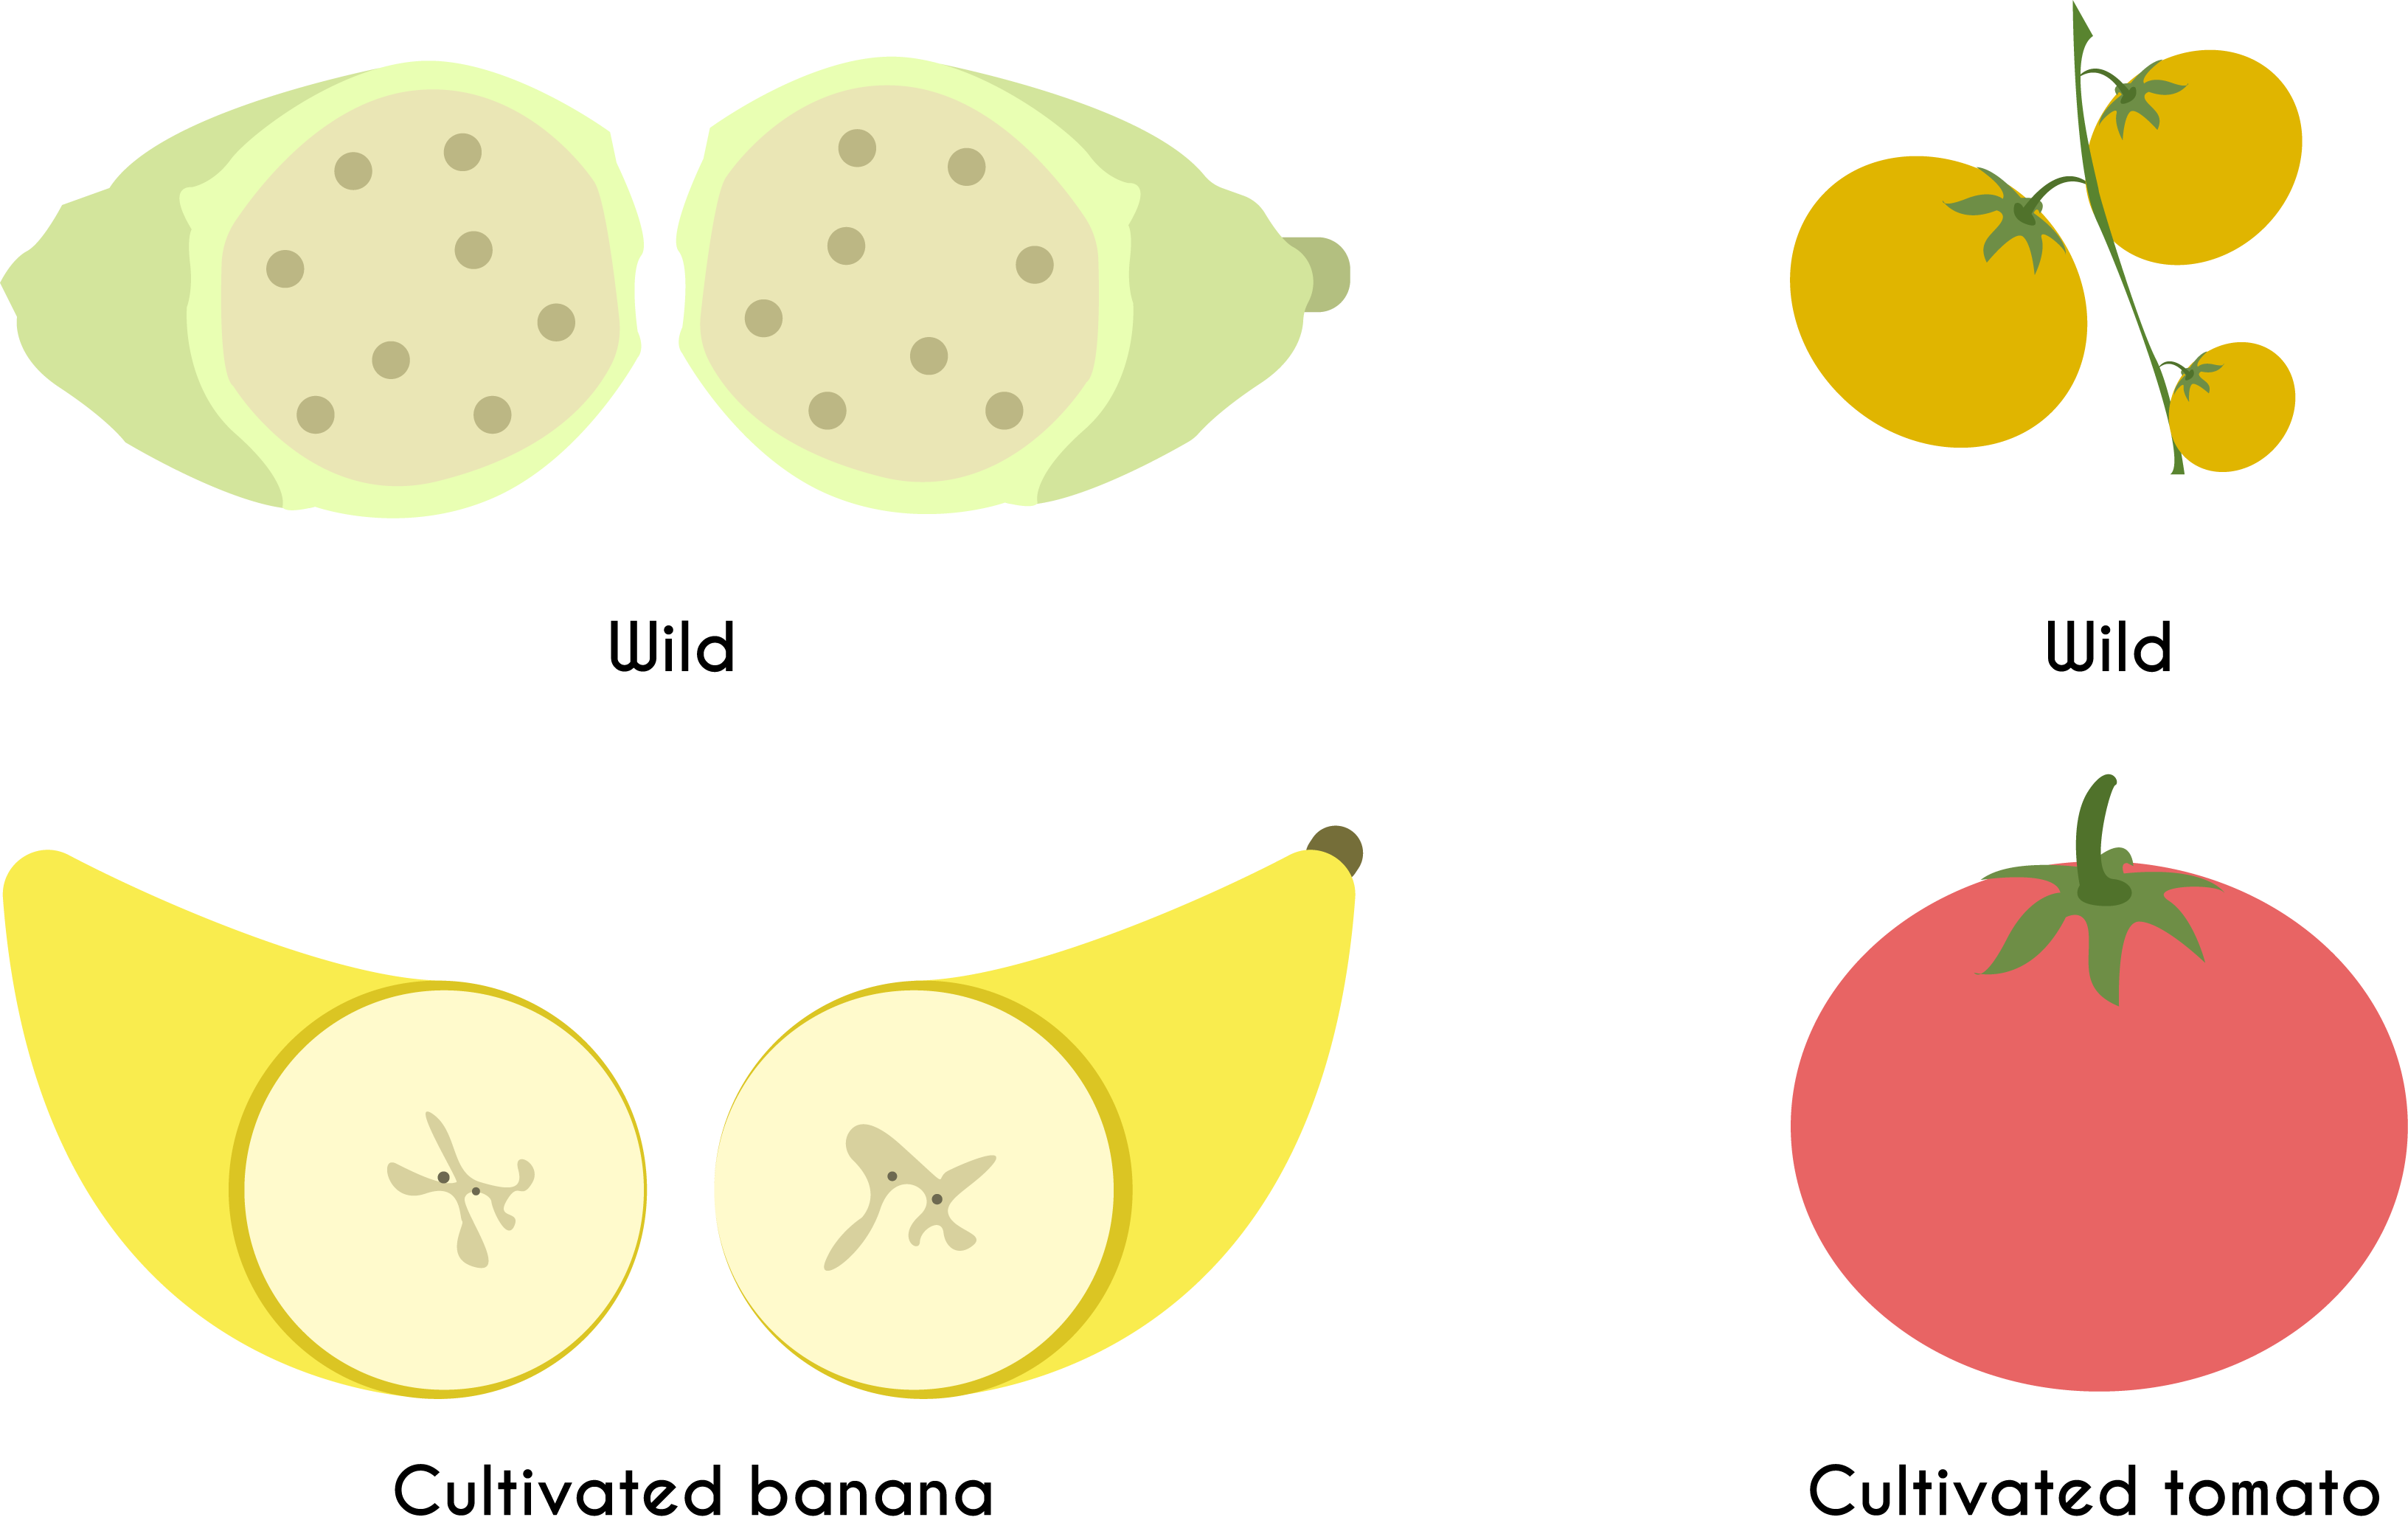 Changes in crop plants as a result of artificial selection